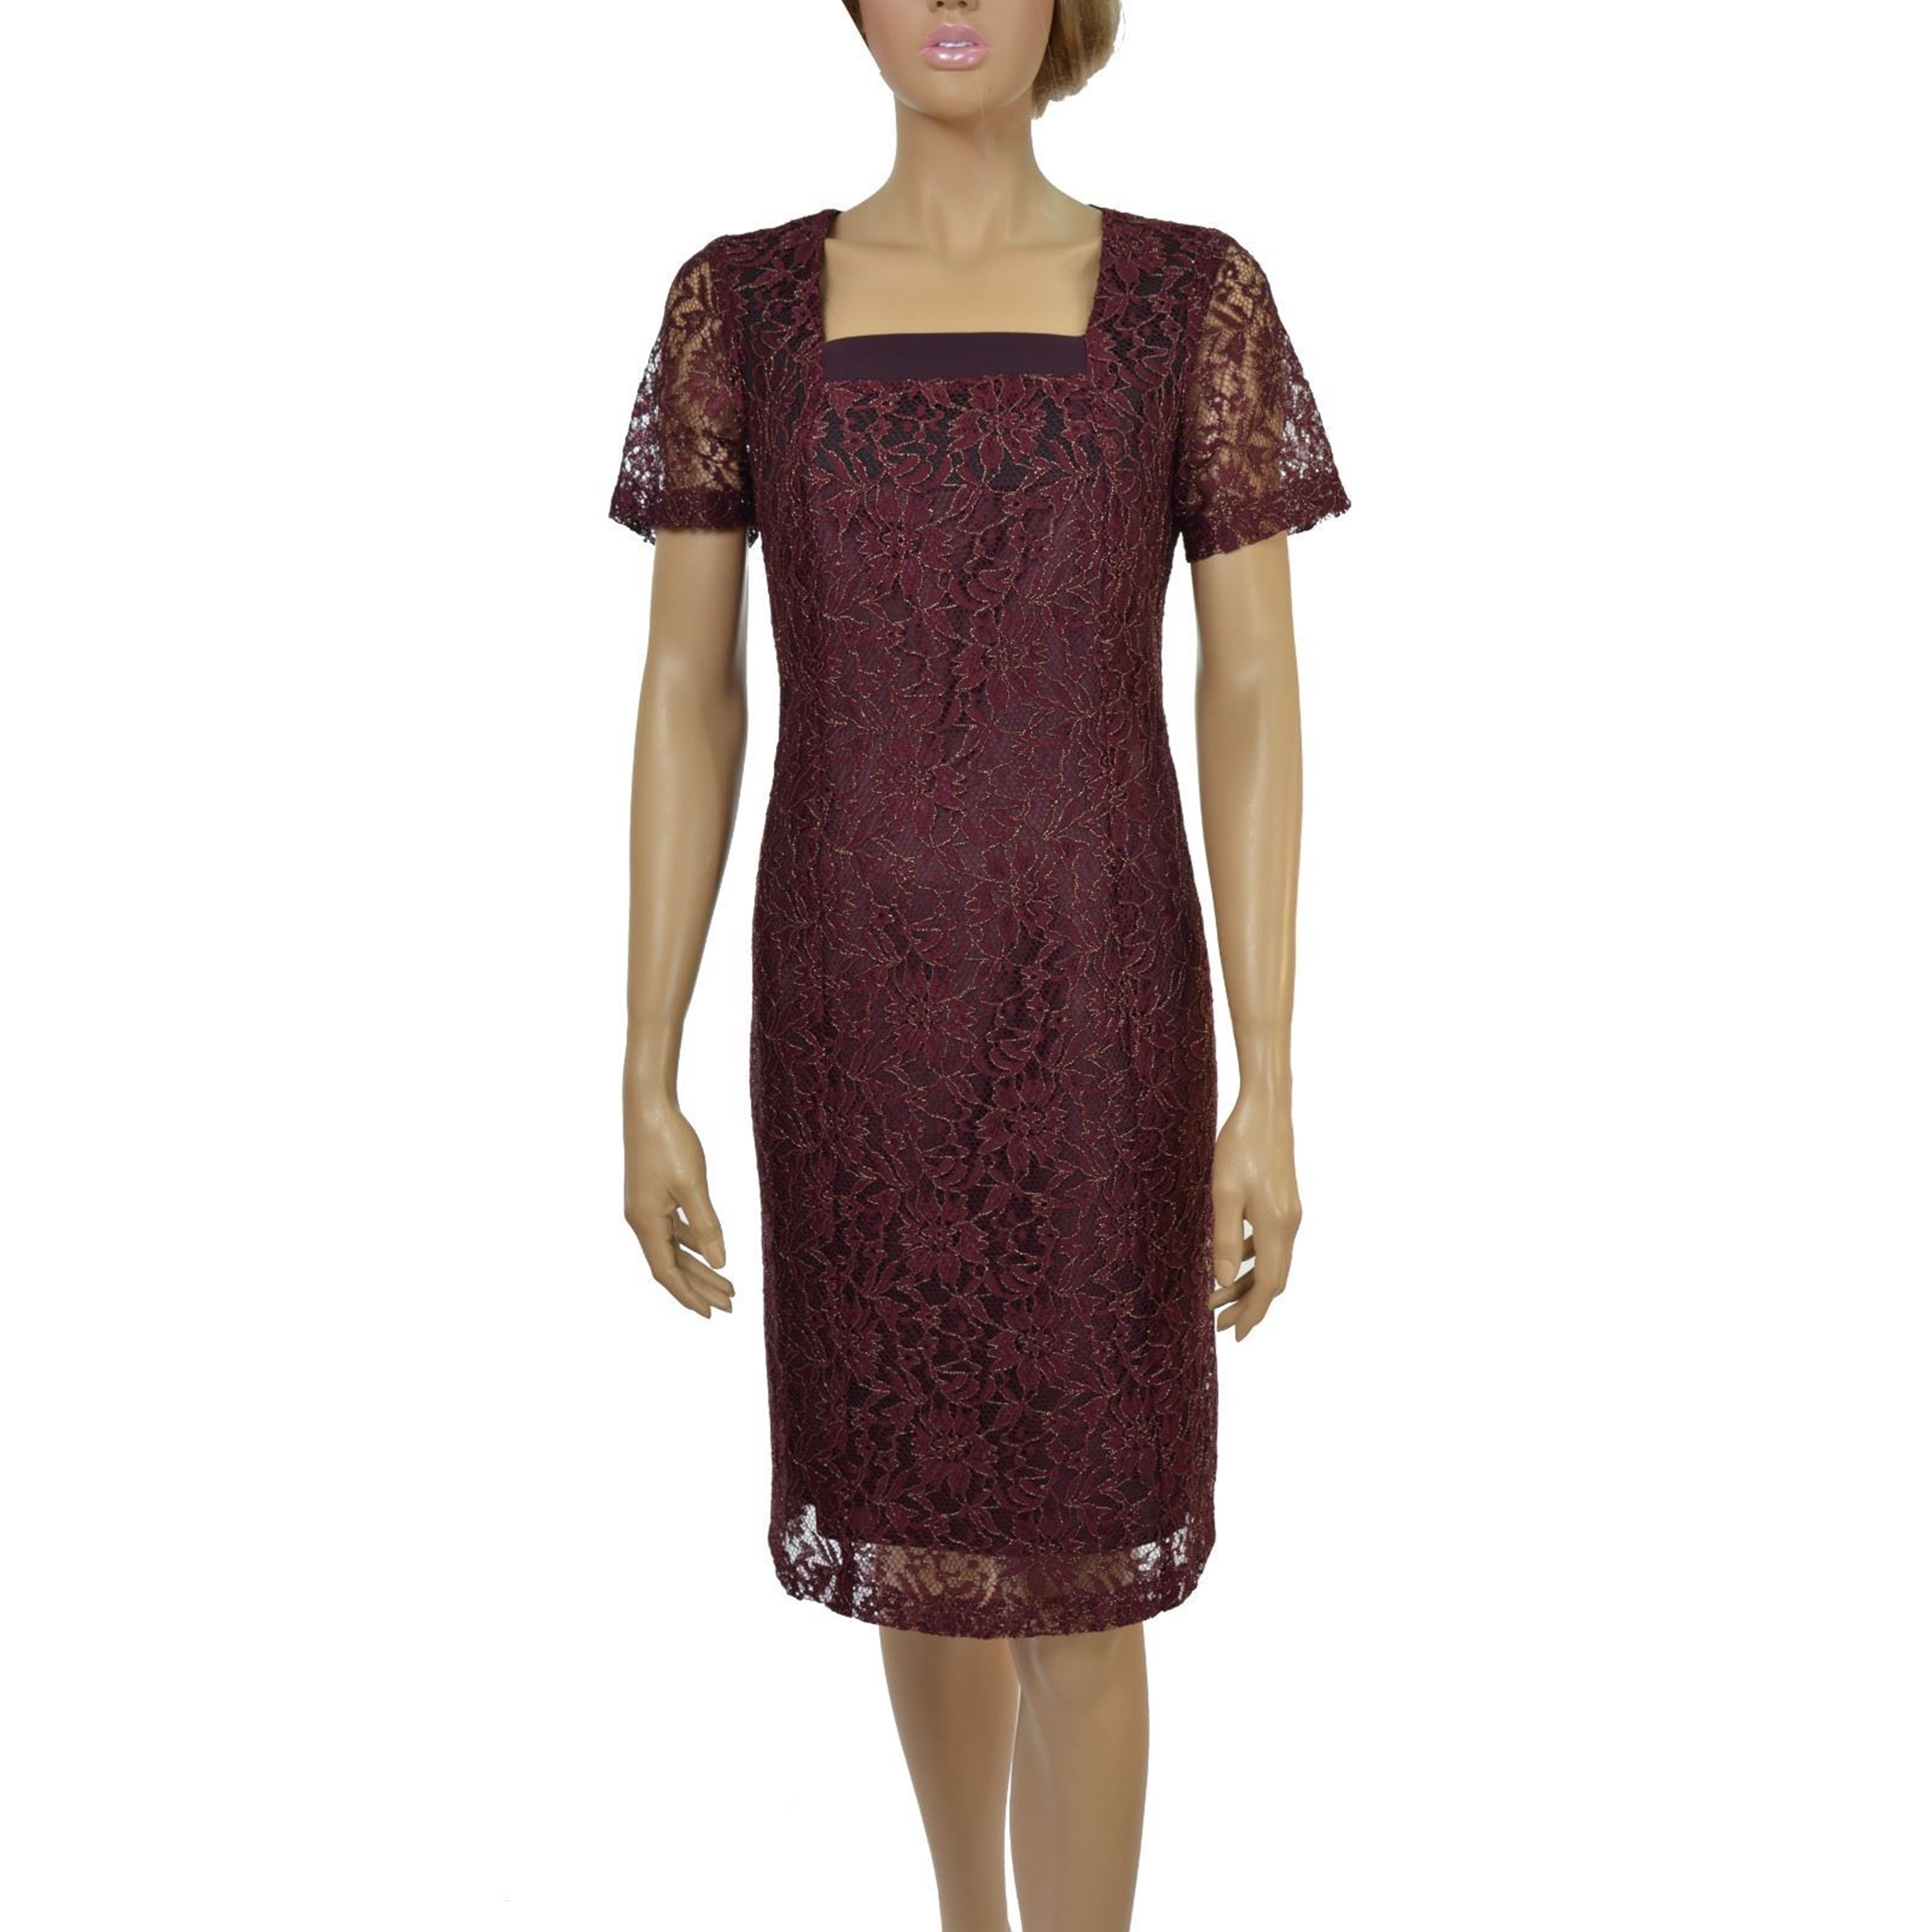 Picture of Women's Dress - LM451438 MAROON